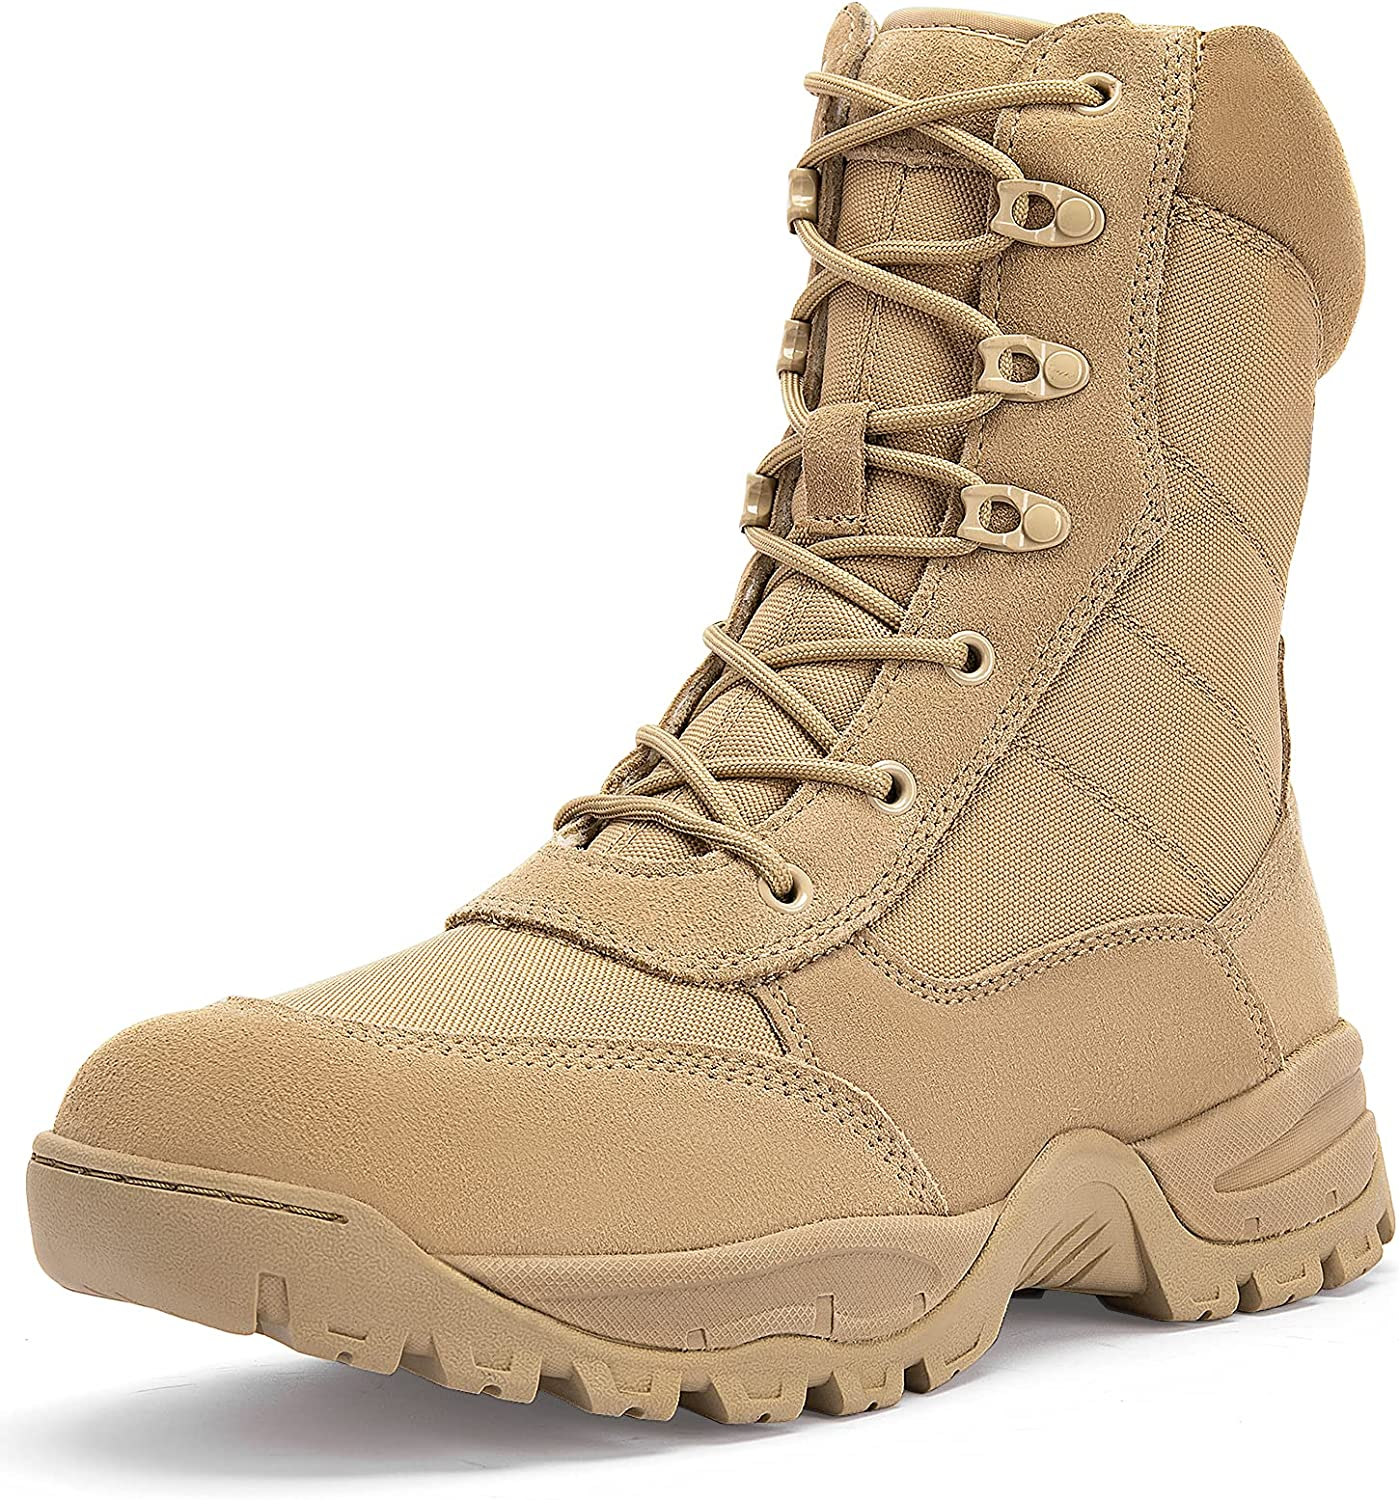 Ranking TOP10 Men's 8'' Military New Orleans Mall Tactical Boots Resistant Water Outdoor